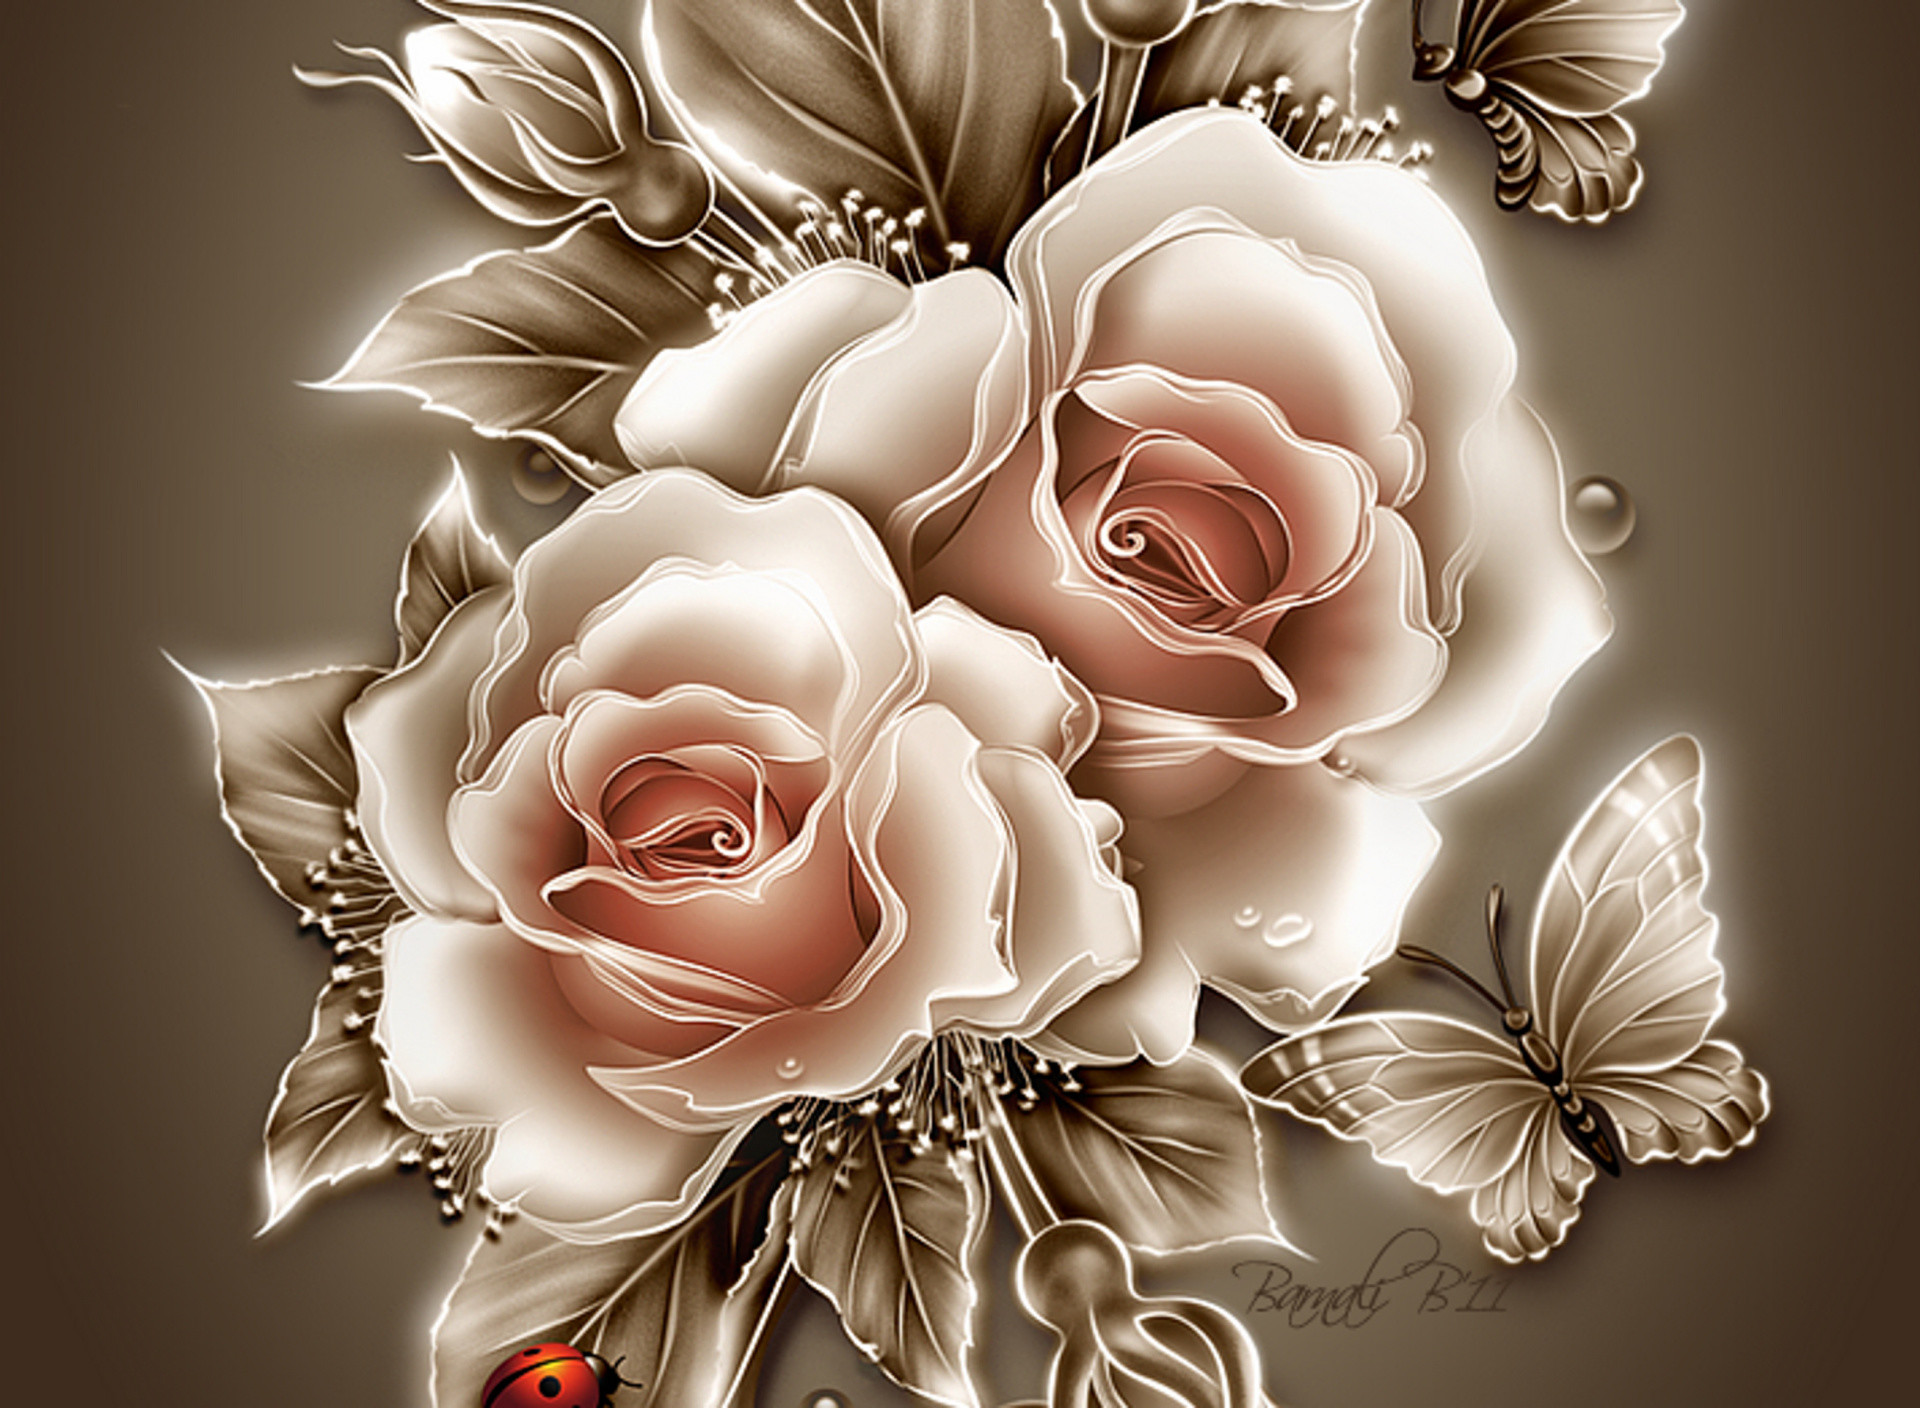 Res: 1920x1408, Download Screensavers Flowers Beautiful High Resolution Wallpaper And Afari For Iphone